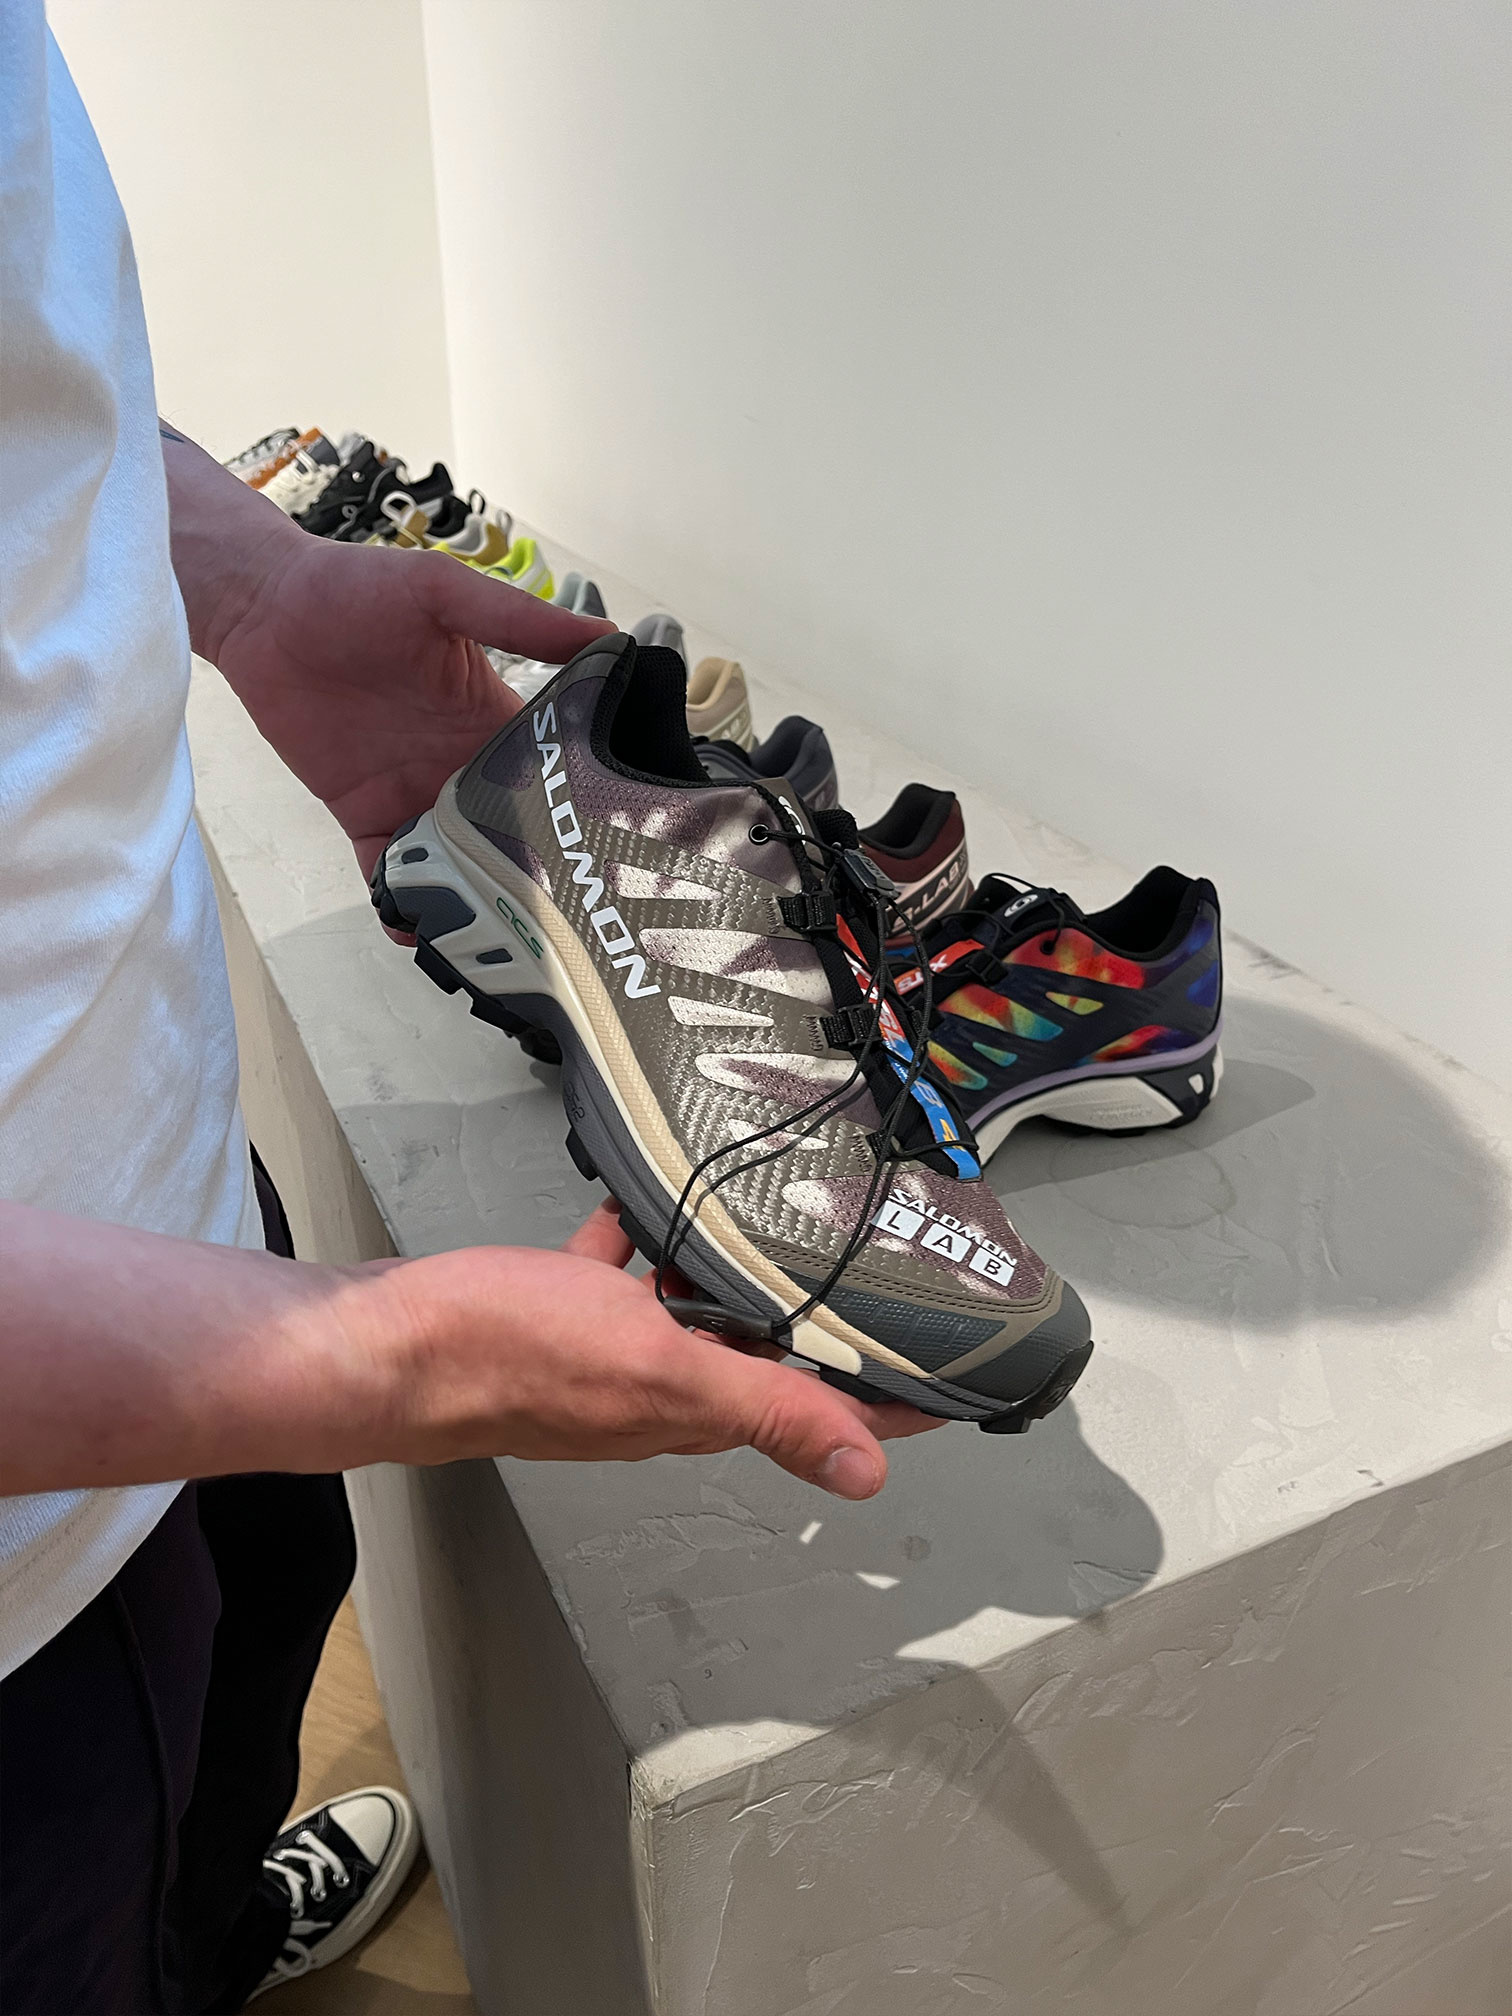 Rico holds up a pair of Salomon shoes